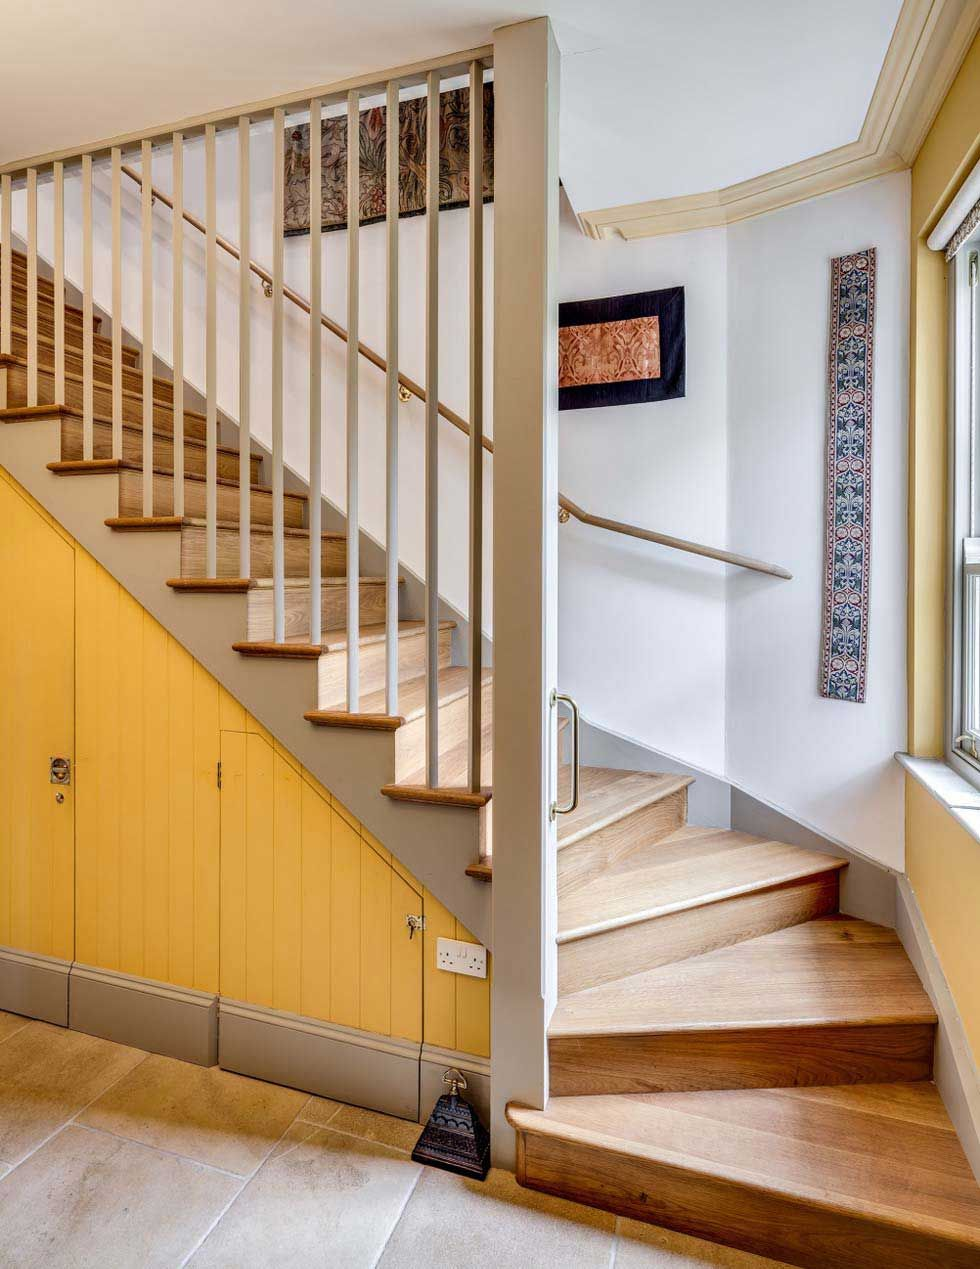 Best The Floor To Ceiling Bannister Staircase Stair Bannister Ideas Basement Remodeling Flooring 400 x 300